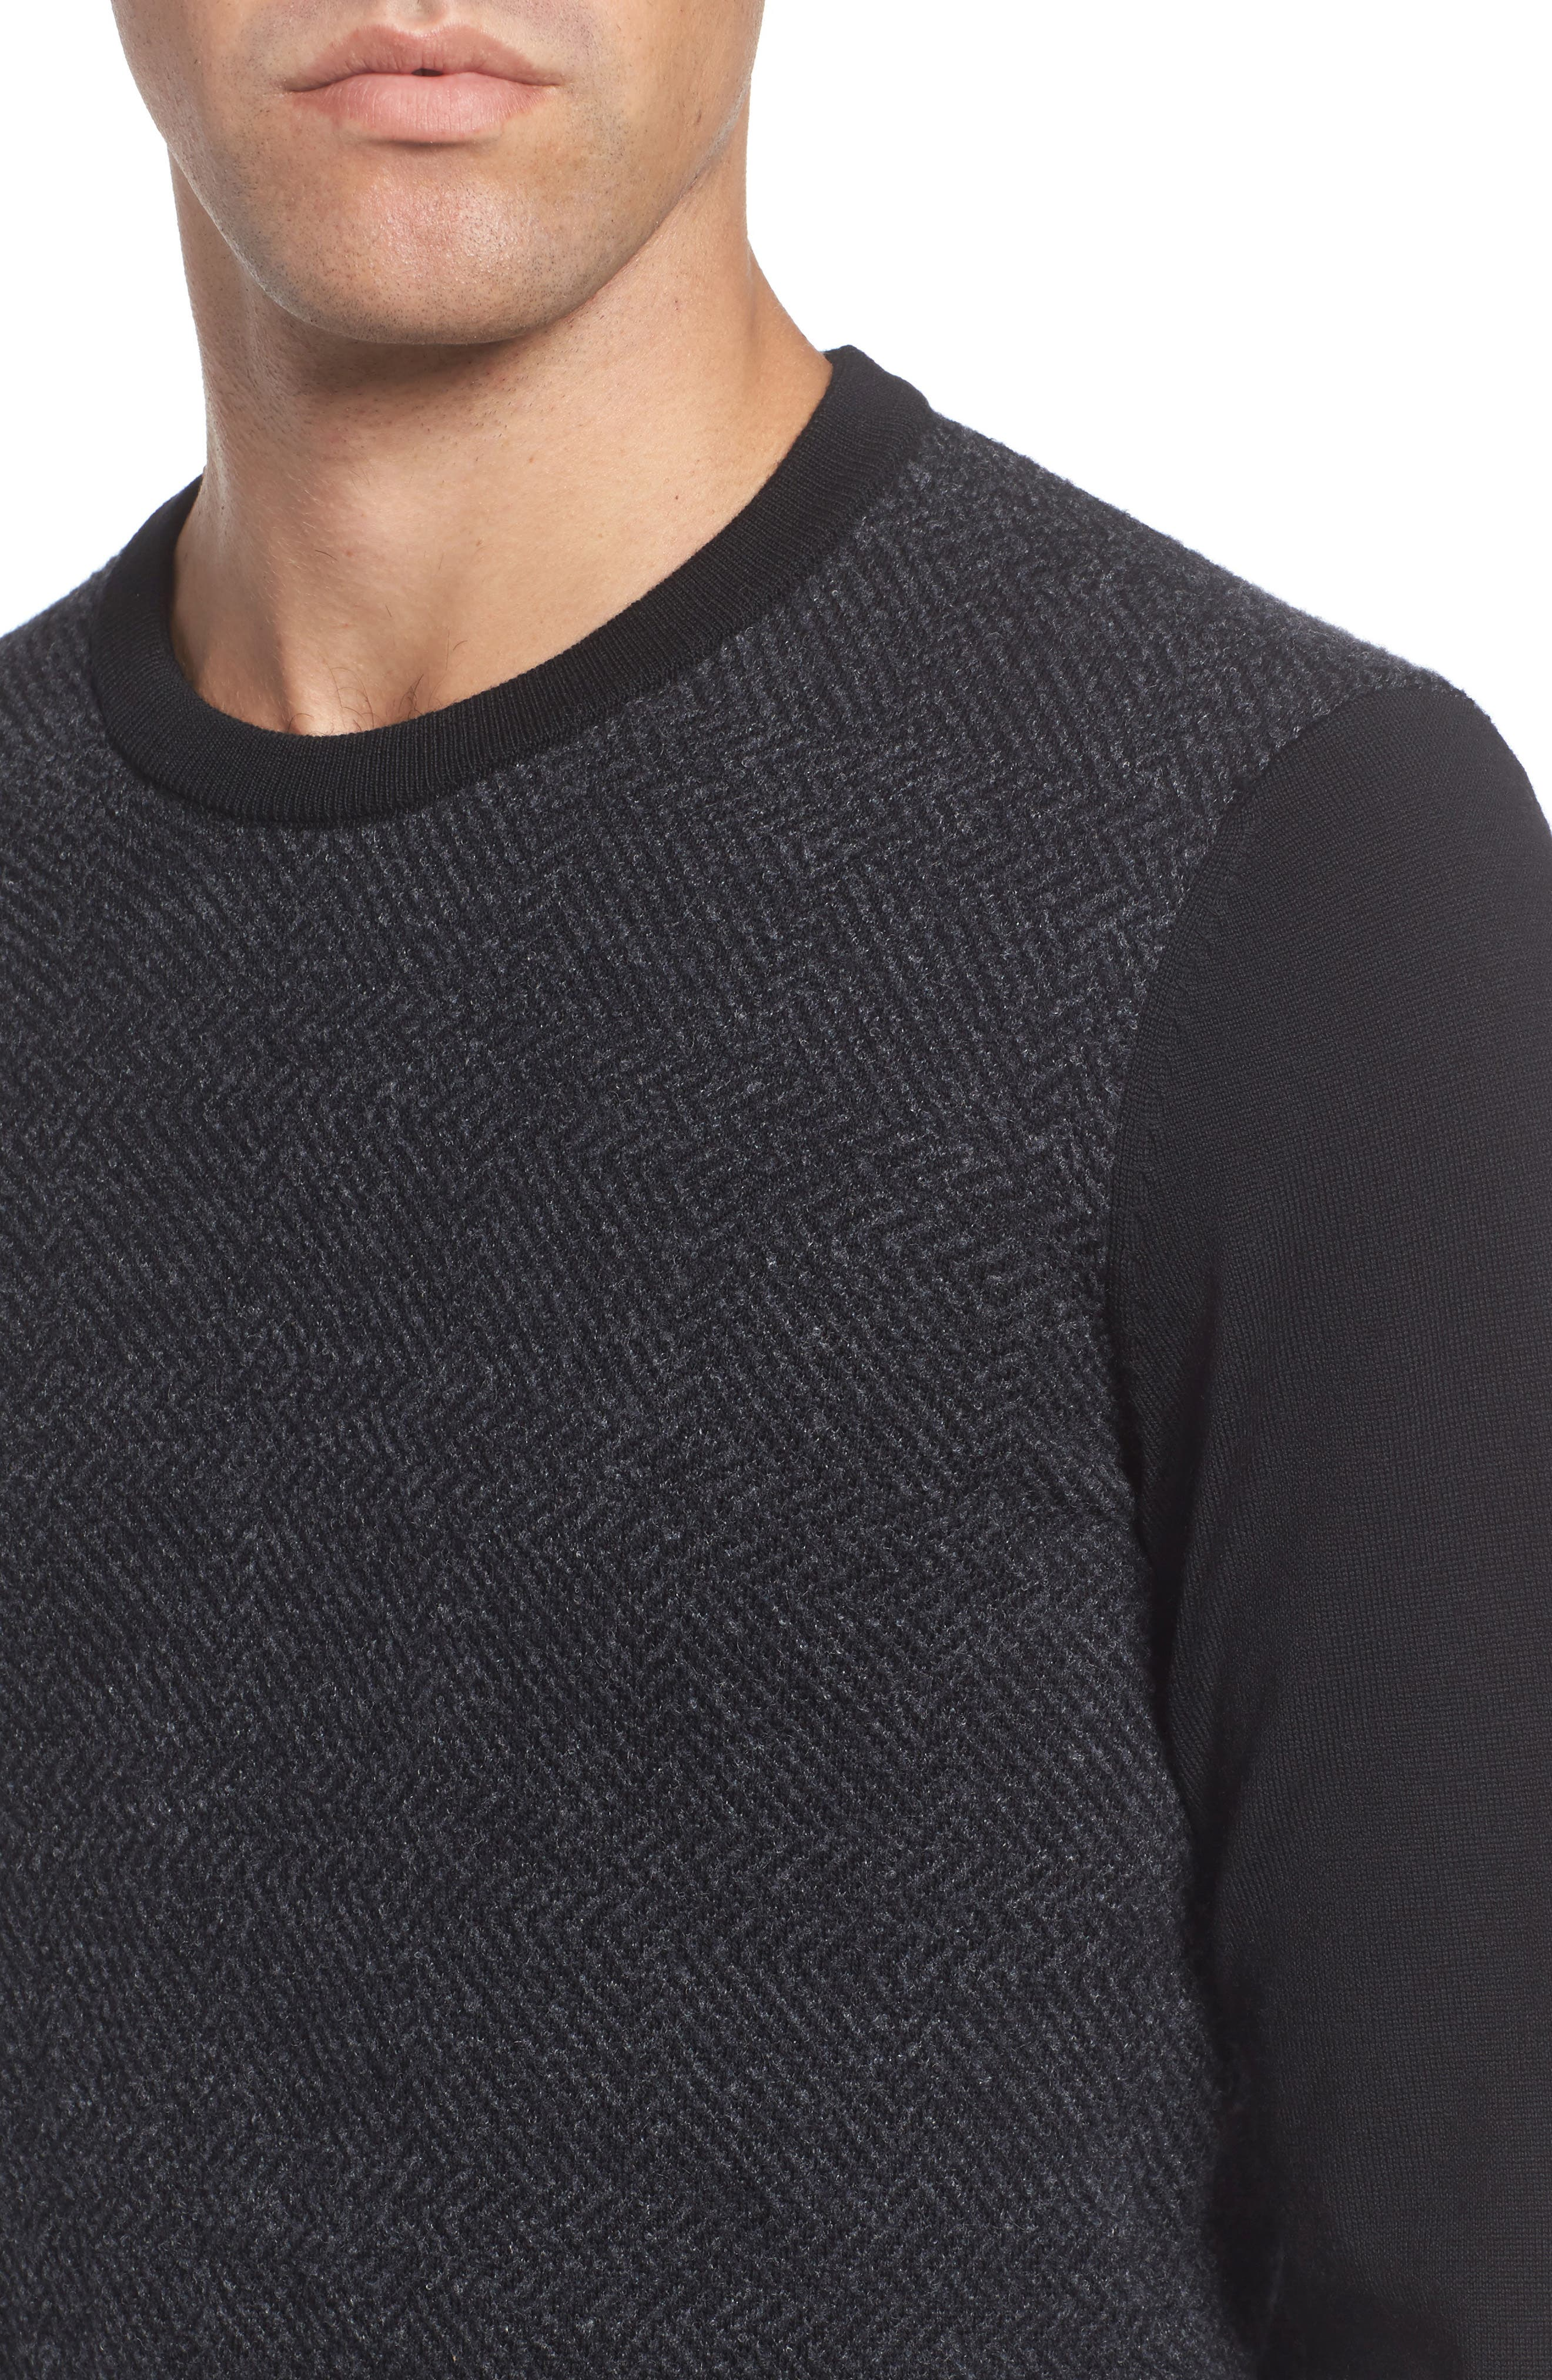 Notto Wool Blend Sweater,                             Alternate thumbnail 4, color,                             061